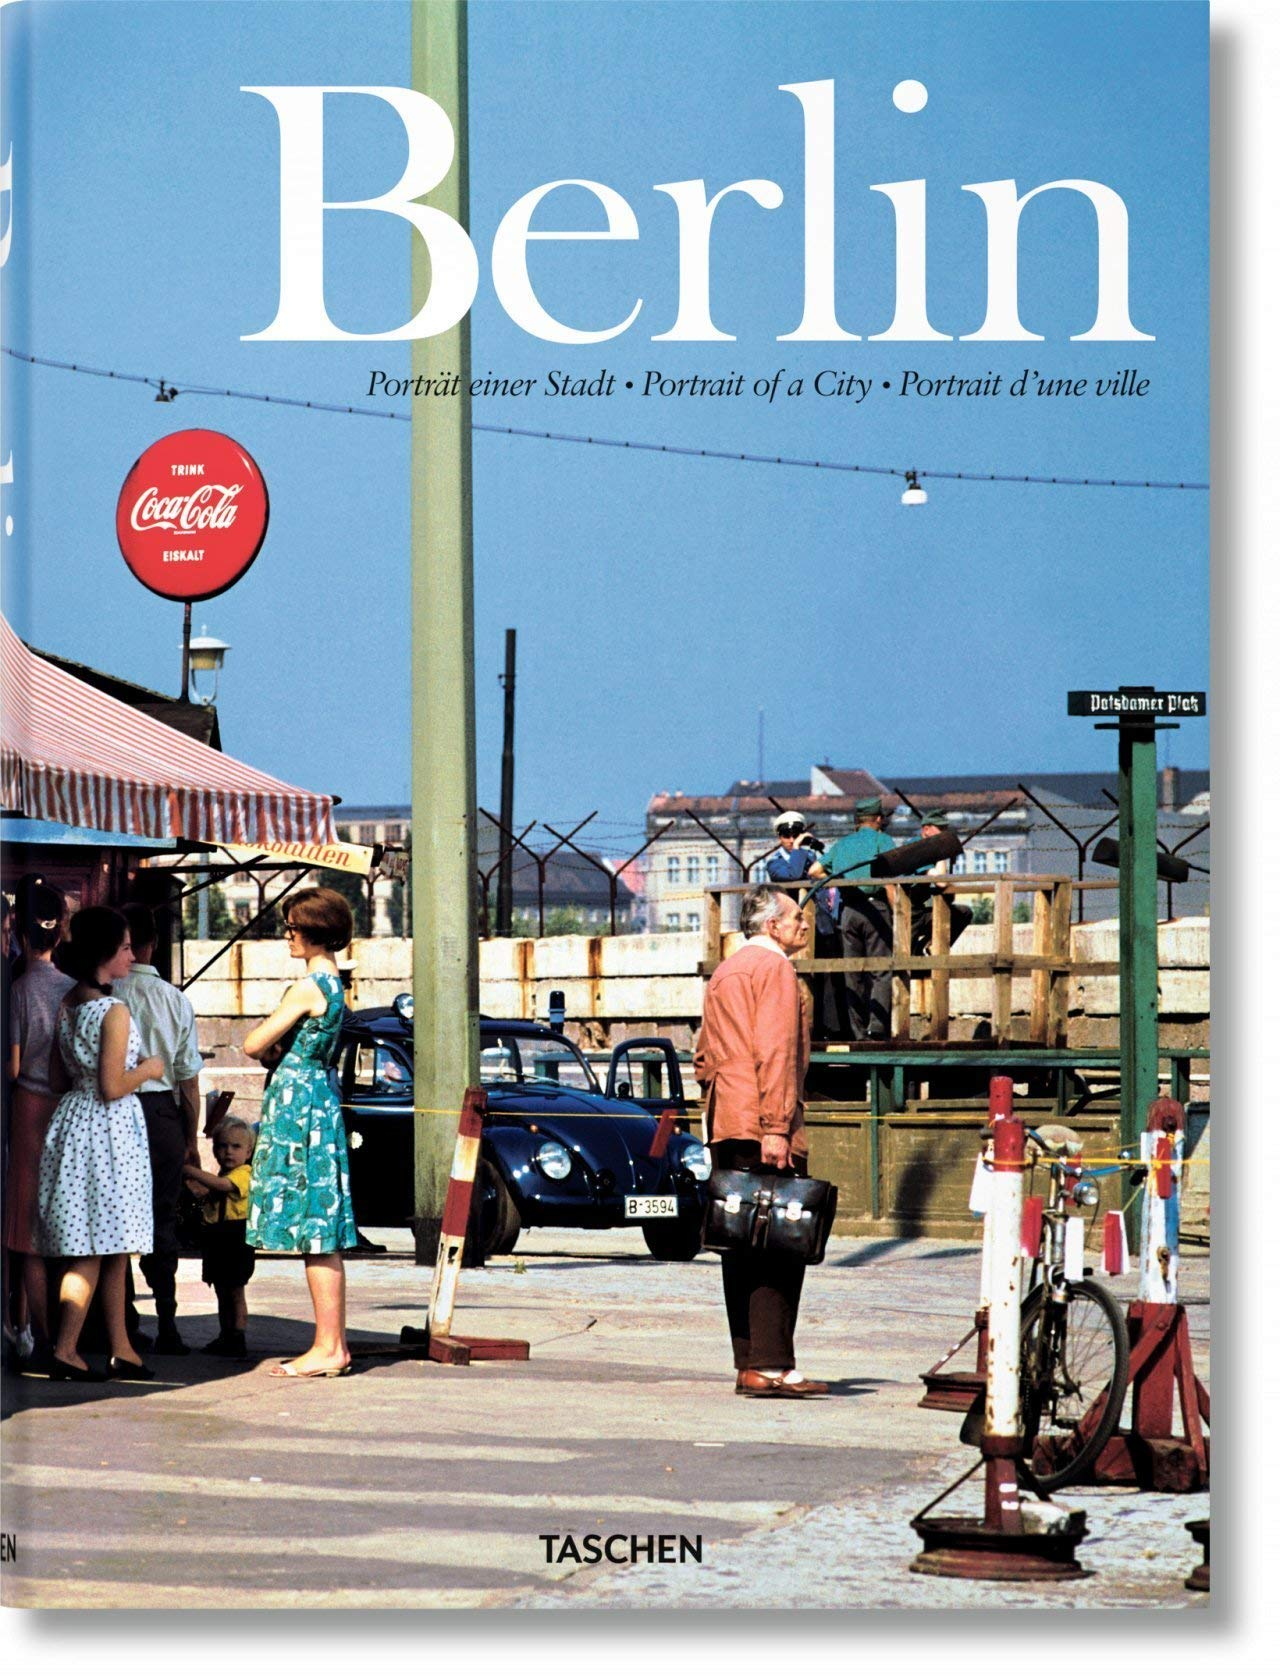 Berlin: Portrait of a City by Hans Christian Adam